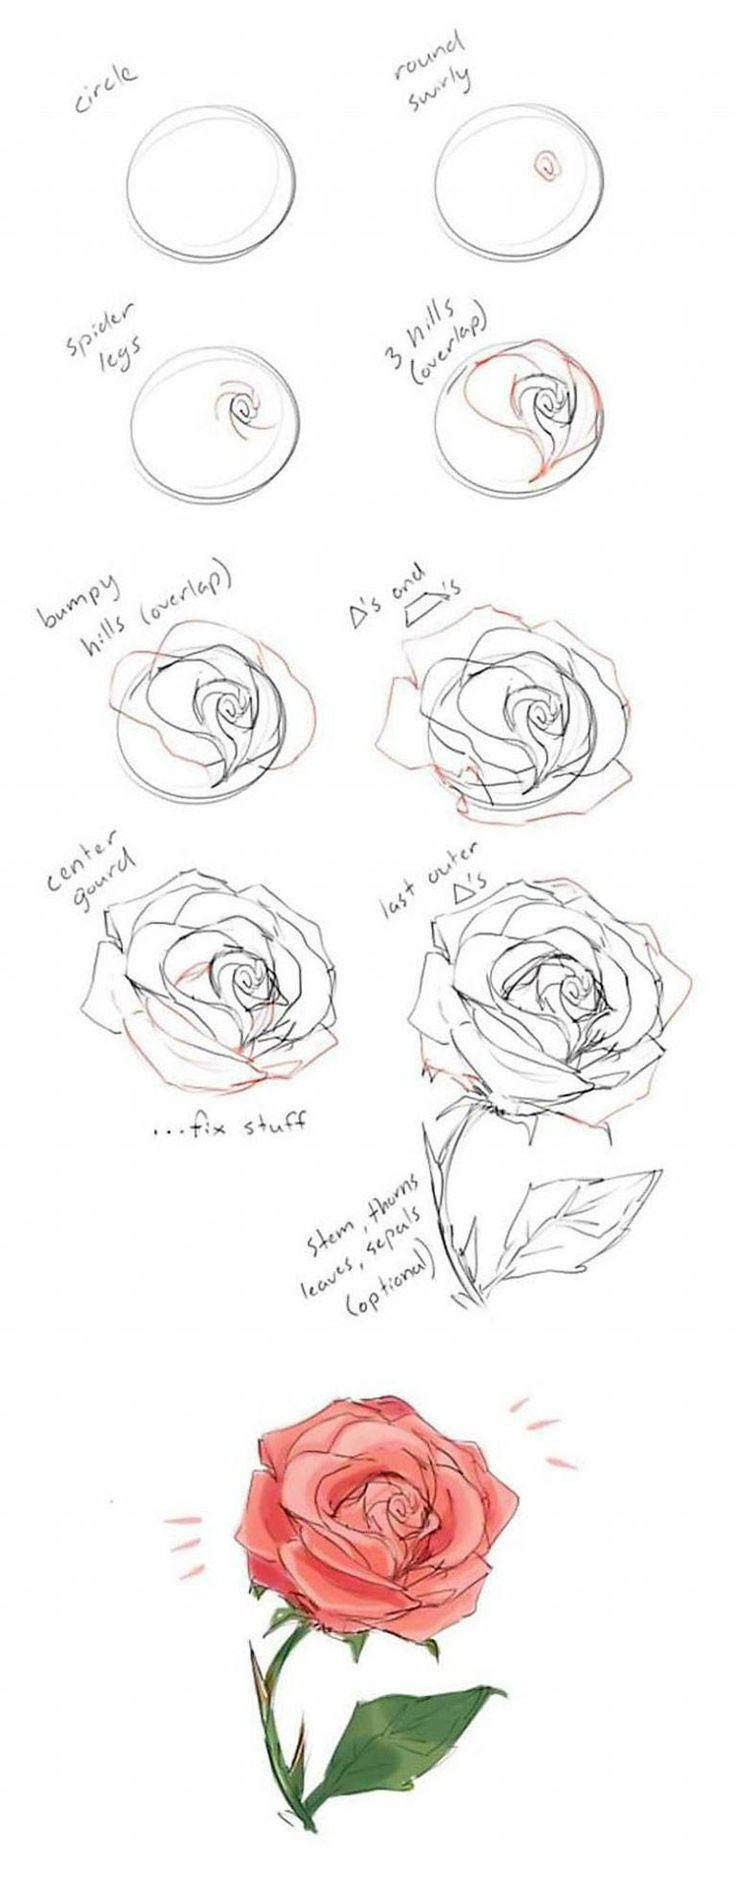 How To Draw Flowers And Turn These Drawings Into Really Cool Wall Art Flower Drawing Tutorials Easy Flower Drawings Flower Drawing